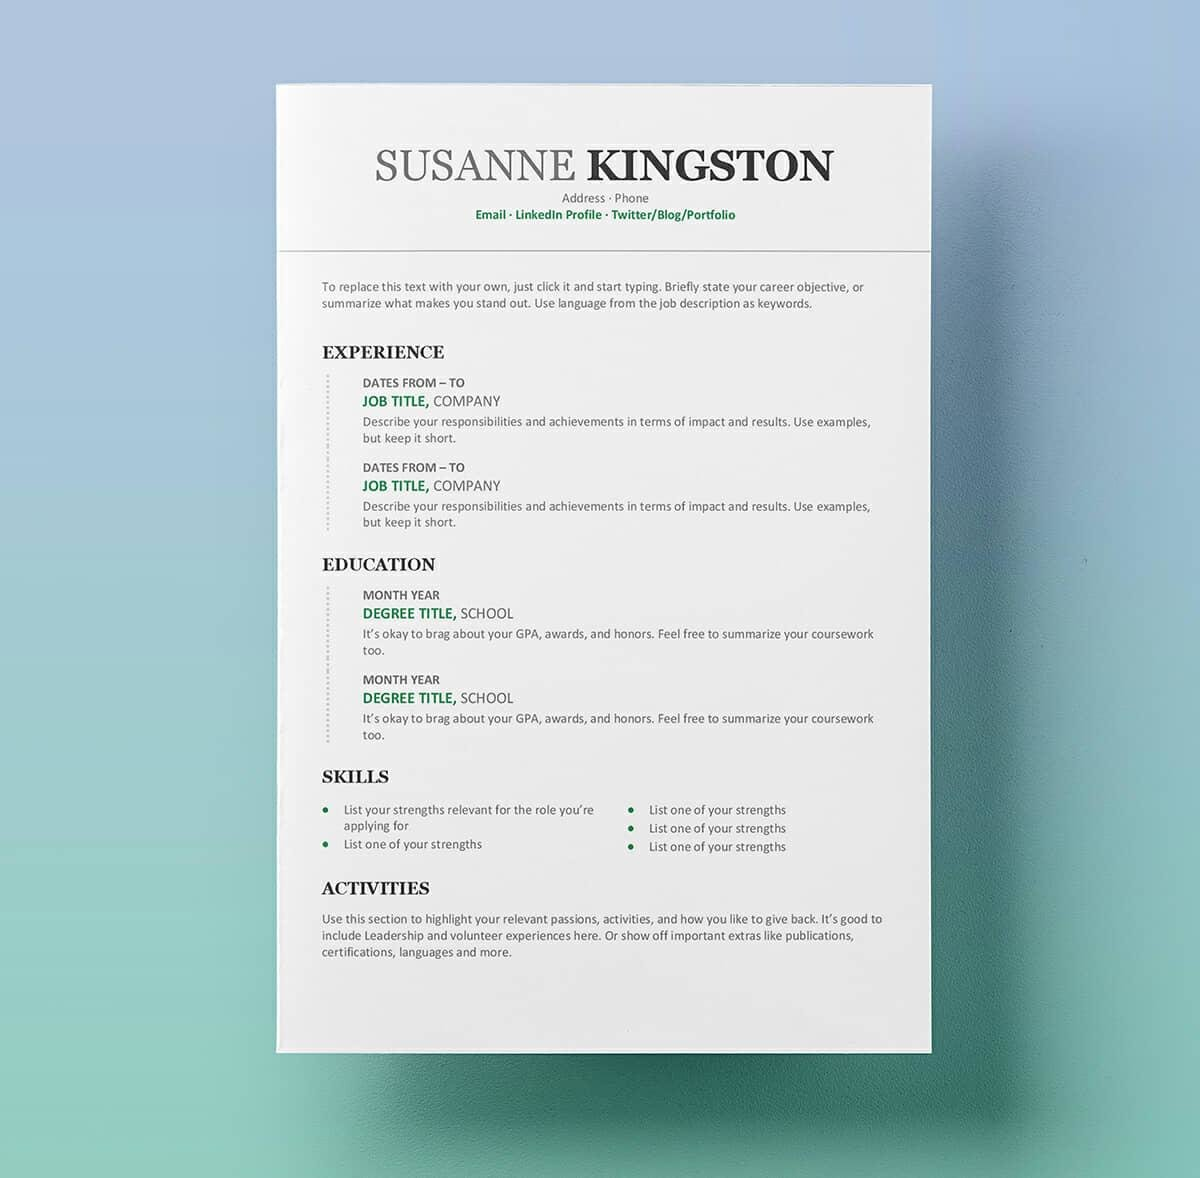 resume templates for word free 15 examples for download - Resume Templates Word